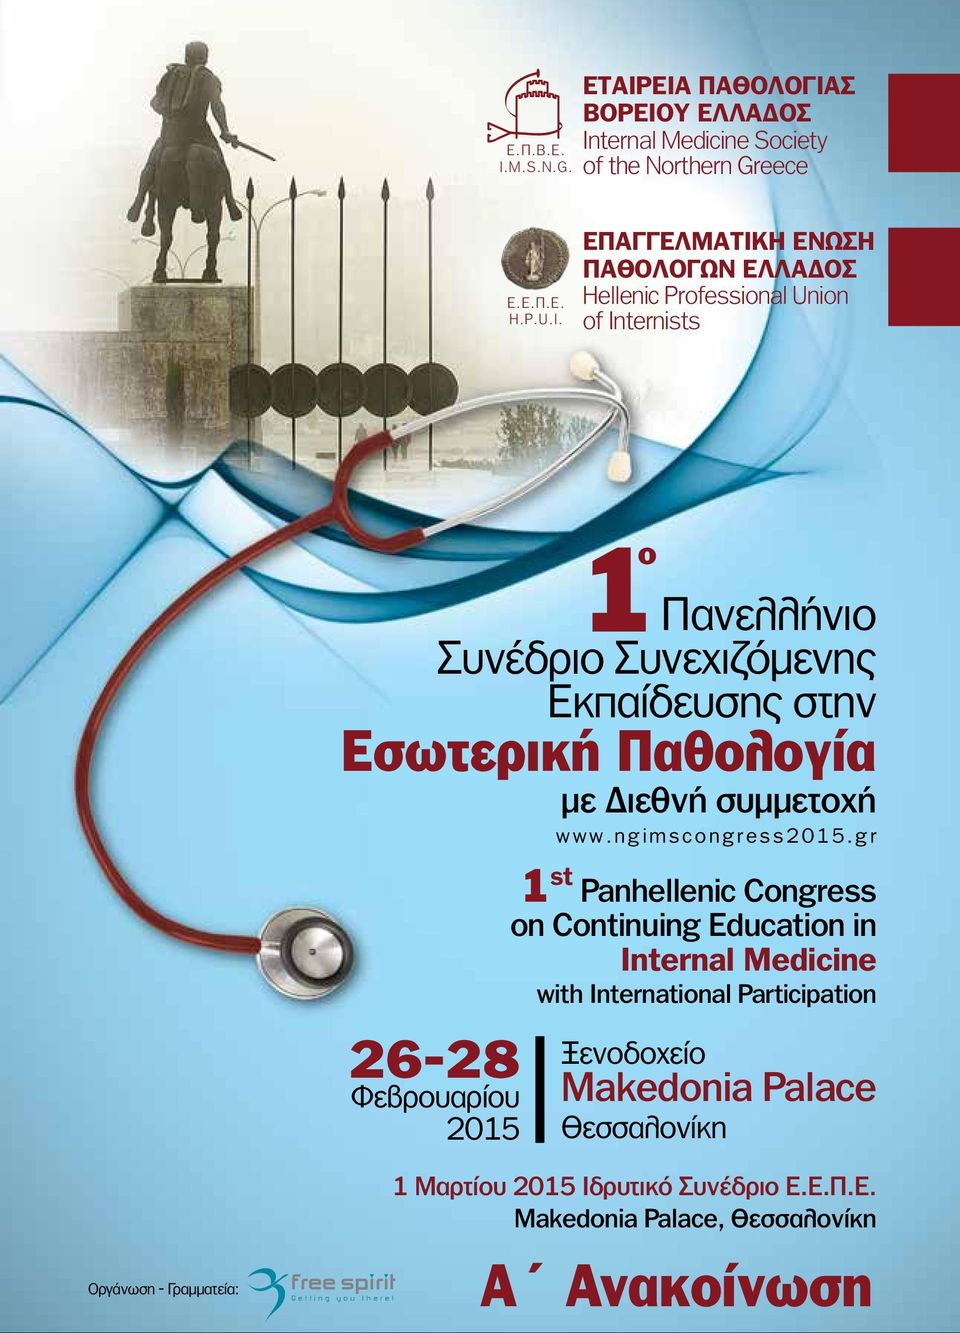 ternal Medicine Society of the Northern Greece Ε.Ε.Π.Ε. H.P.U.I.